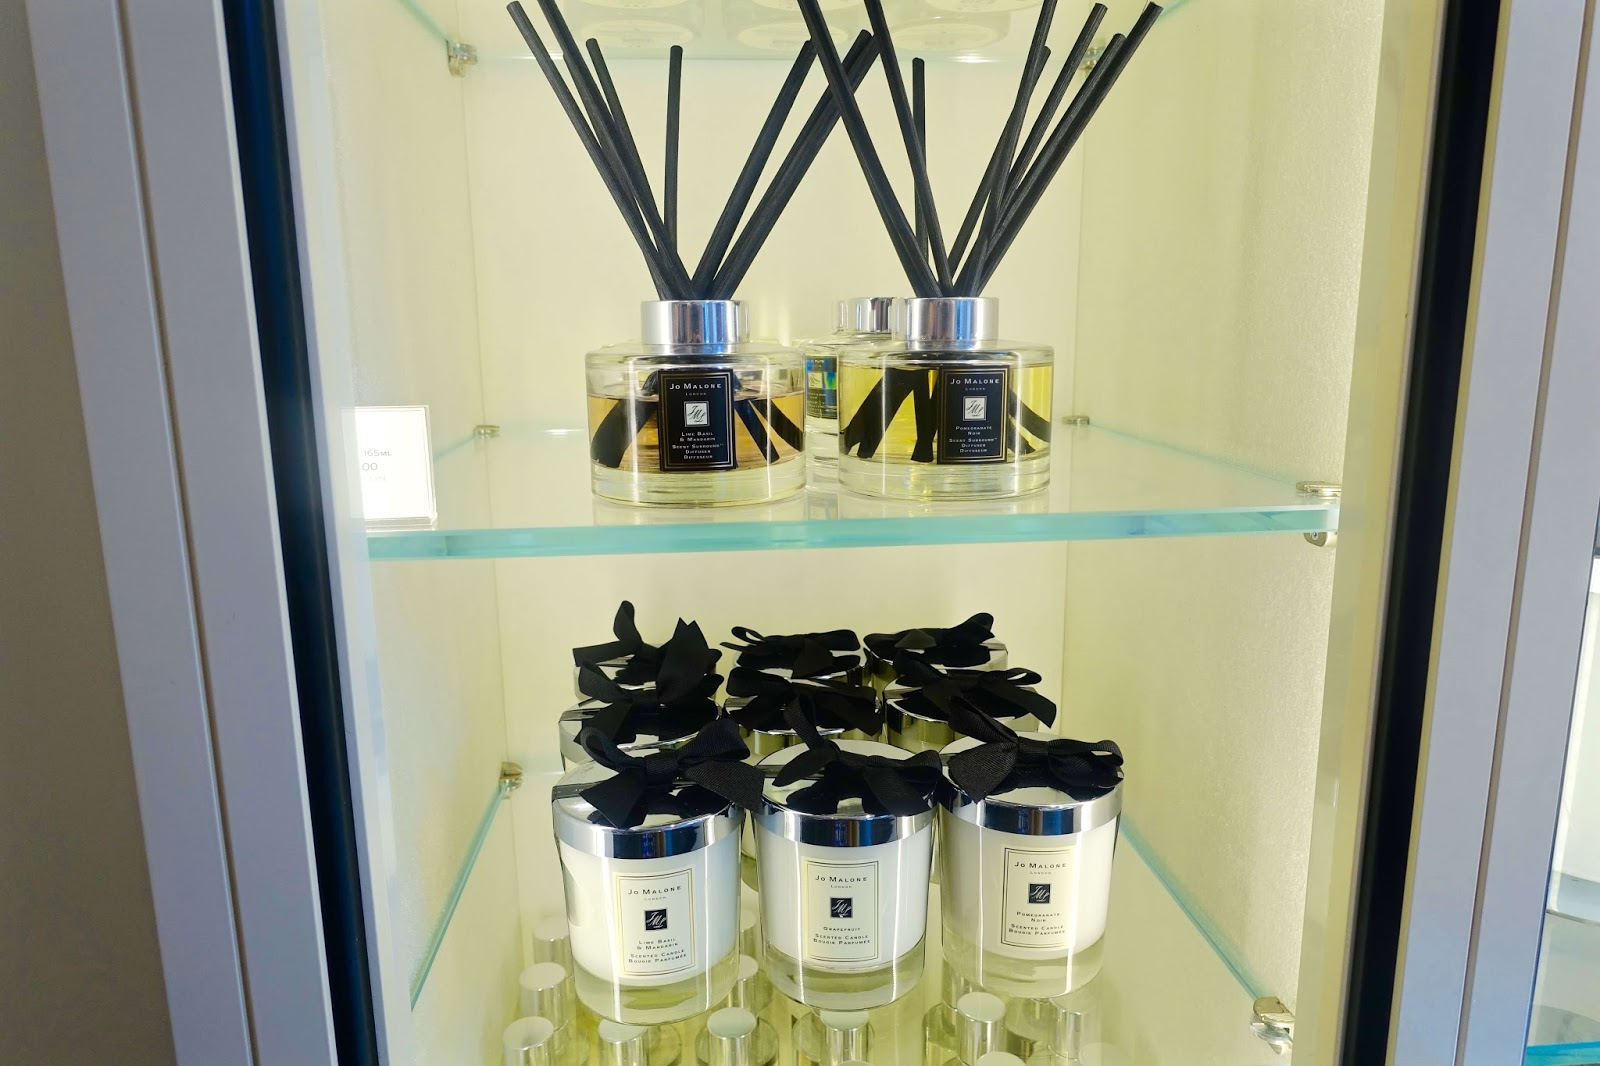 Jo Malone candles and in-scents